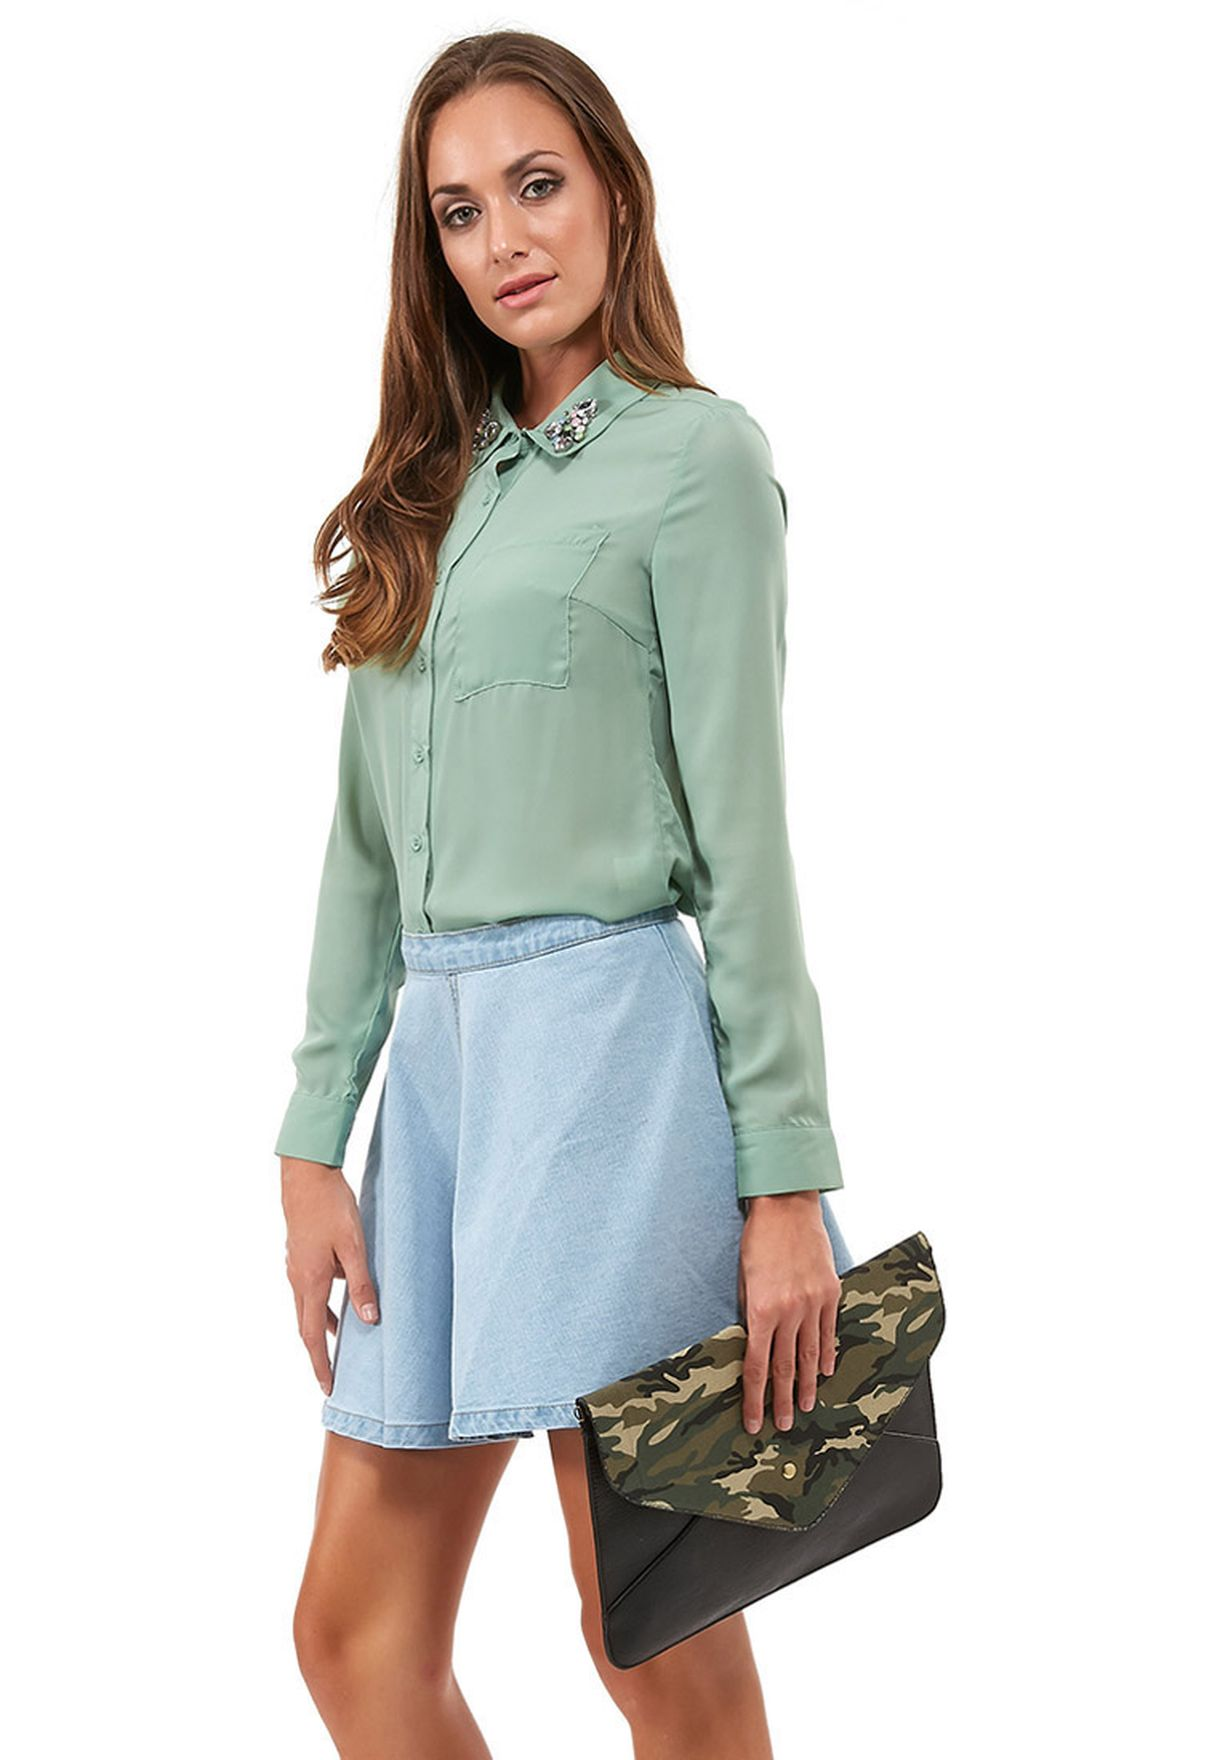 Shop Glamorous Green Beaded Collar Shirt For Women In Globally